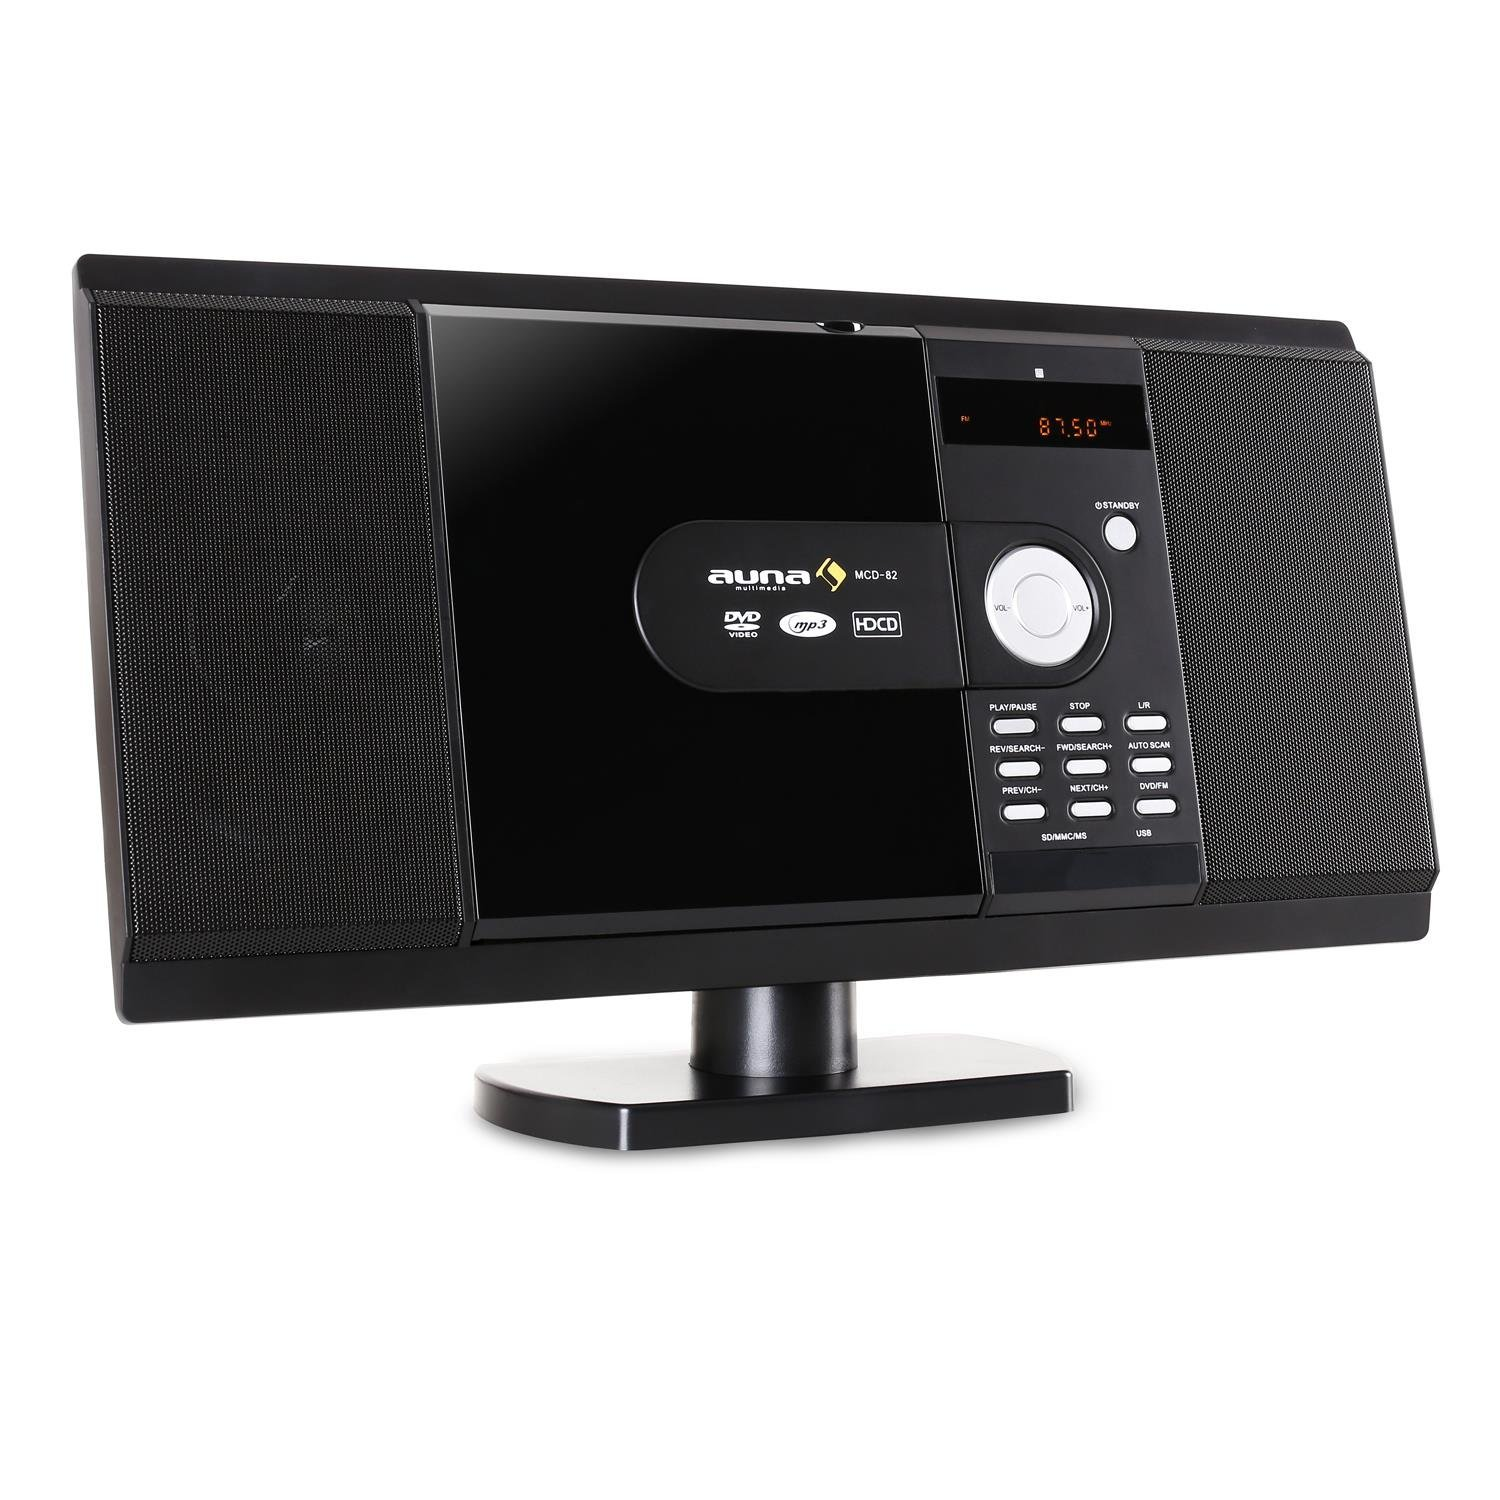 auna BlackMask Vertikal-Stereoanlage, MP3-fähiger CD-Player, FM und DAB+ Radiotuner, Bluetooth-Funktion, Blackmask Display: Negatives LCD-Display, AUX-Eingang, USB-Port, Kopfhöreranschluss, schwarz